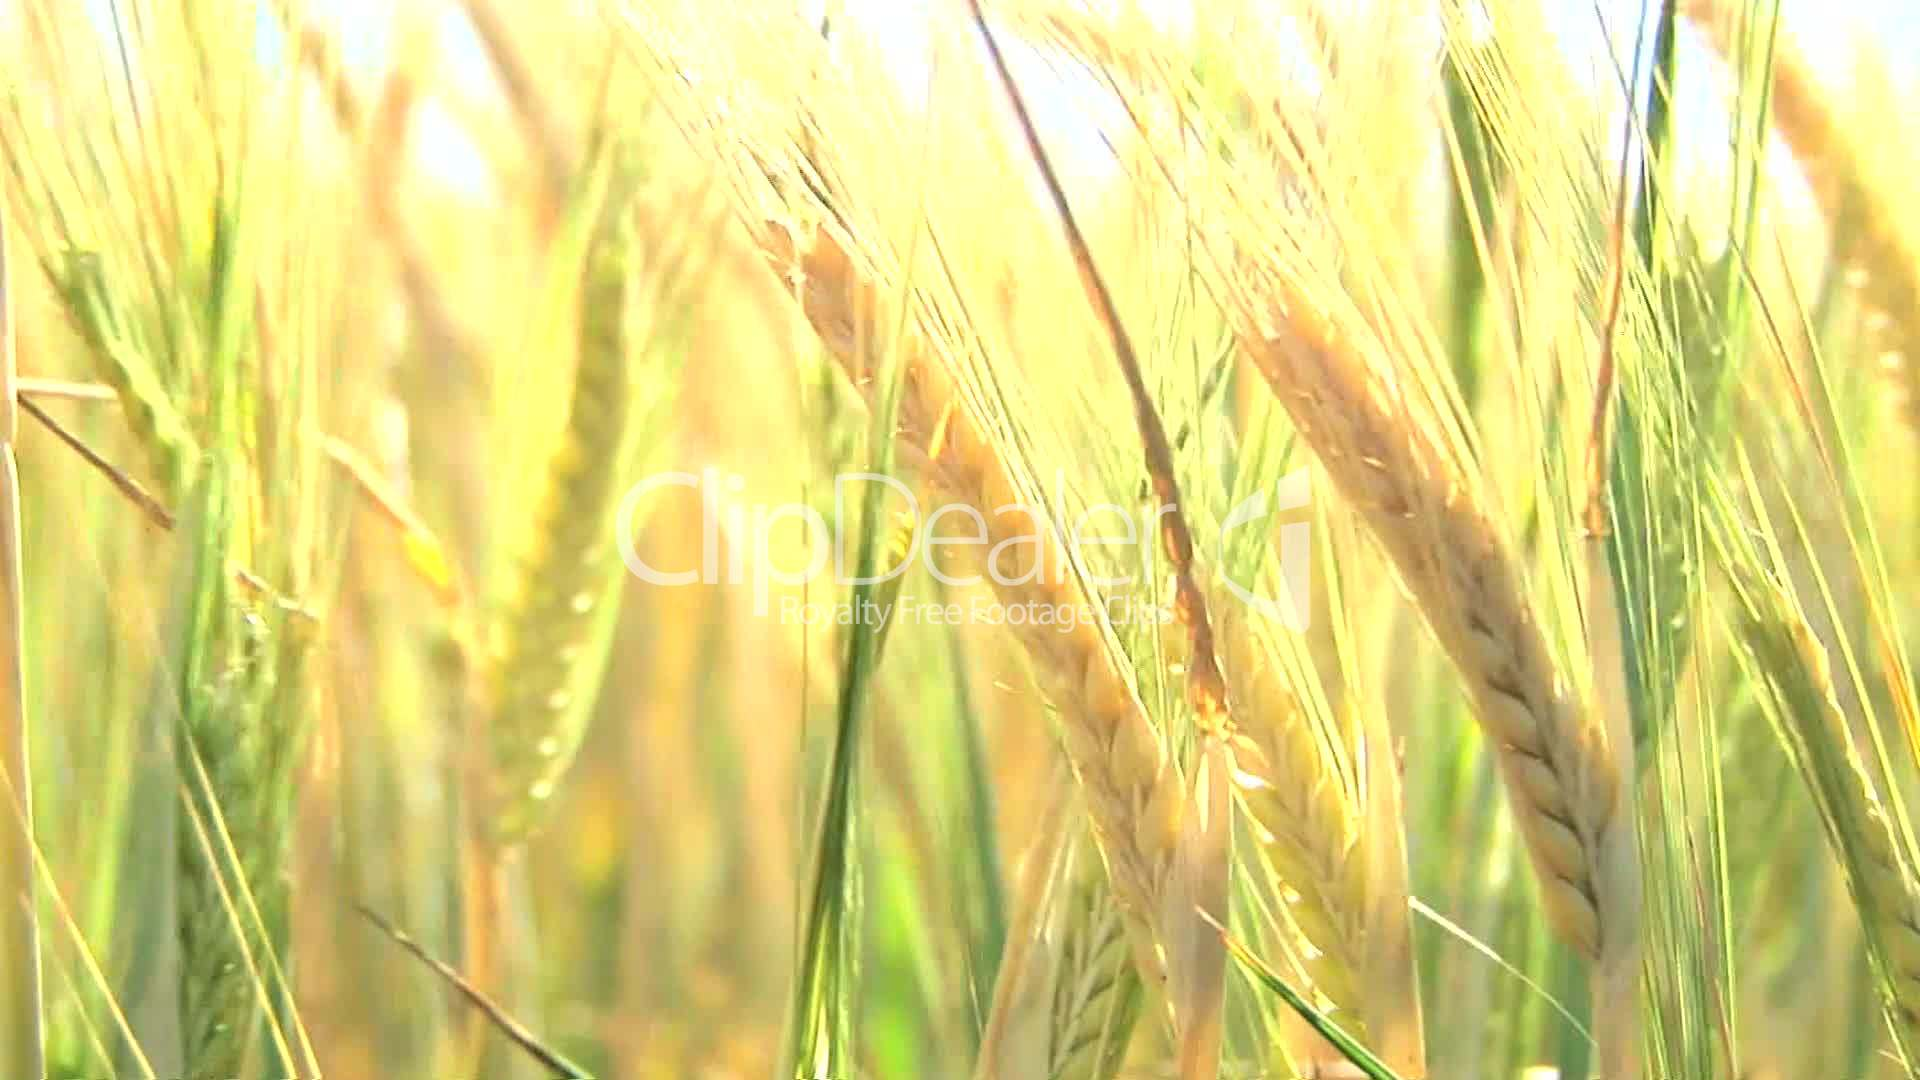 Wheat Stalk: Royalty-free video and stock footage